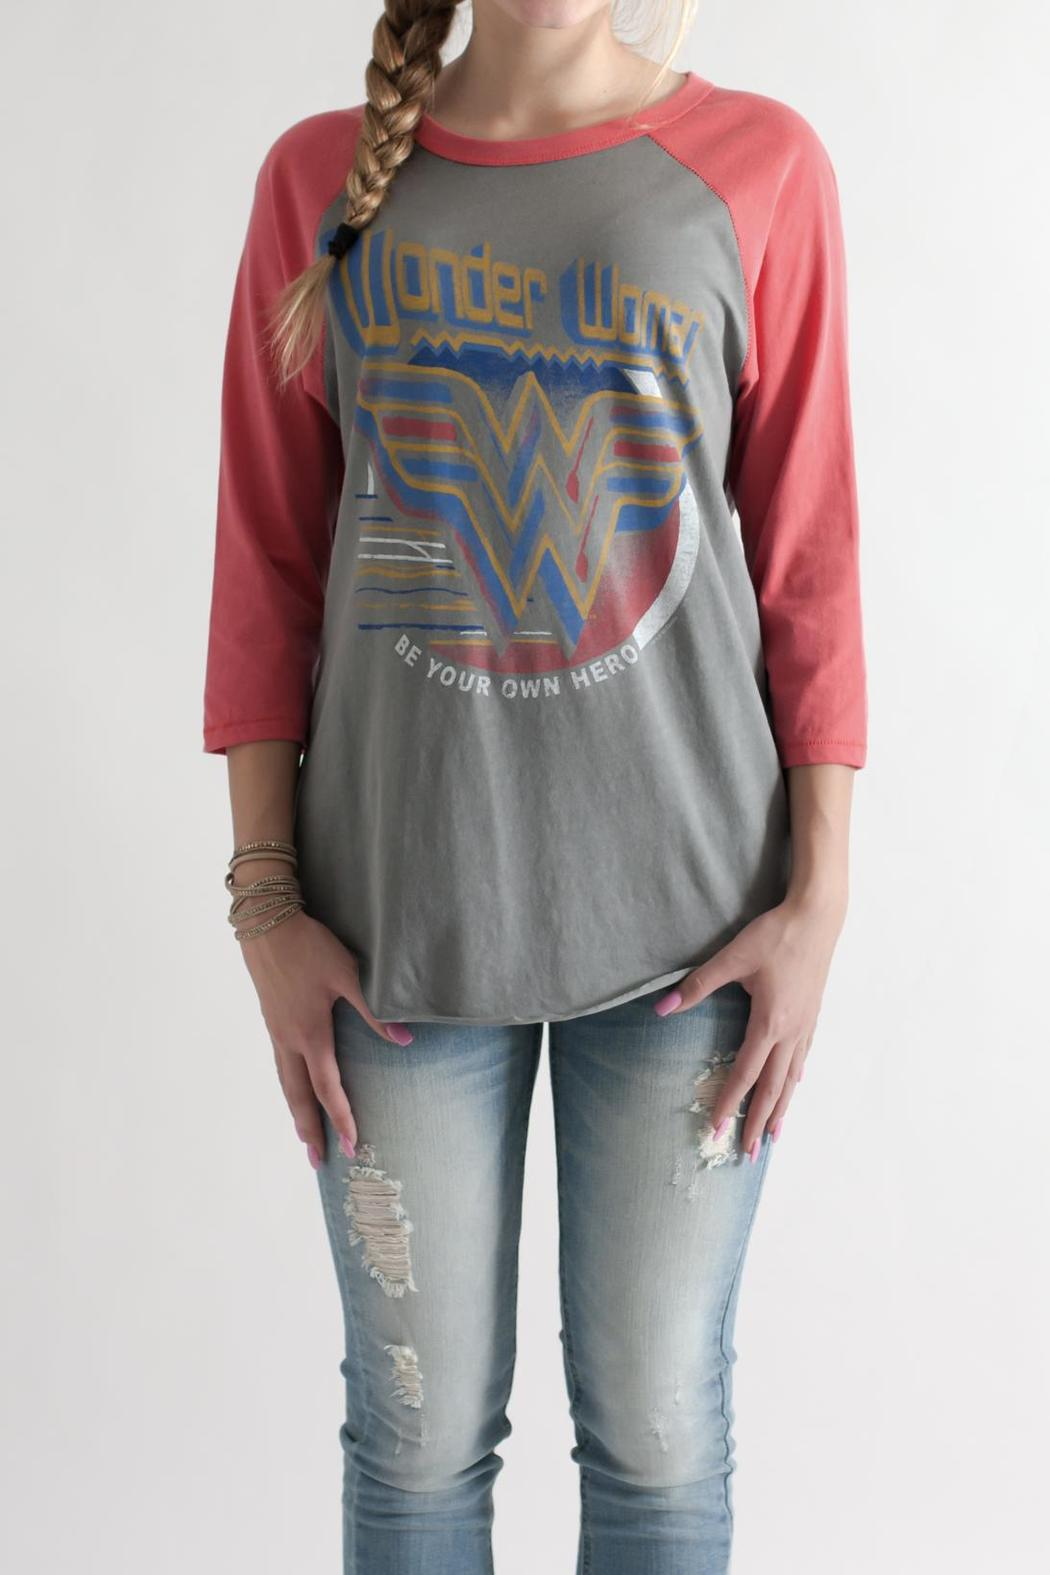 Junk Food Clothing Wonder Woman Raglan From Philadelphia By May 23  Shoptiques-4650